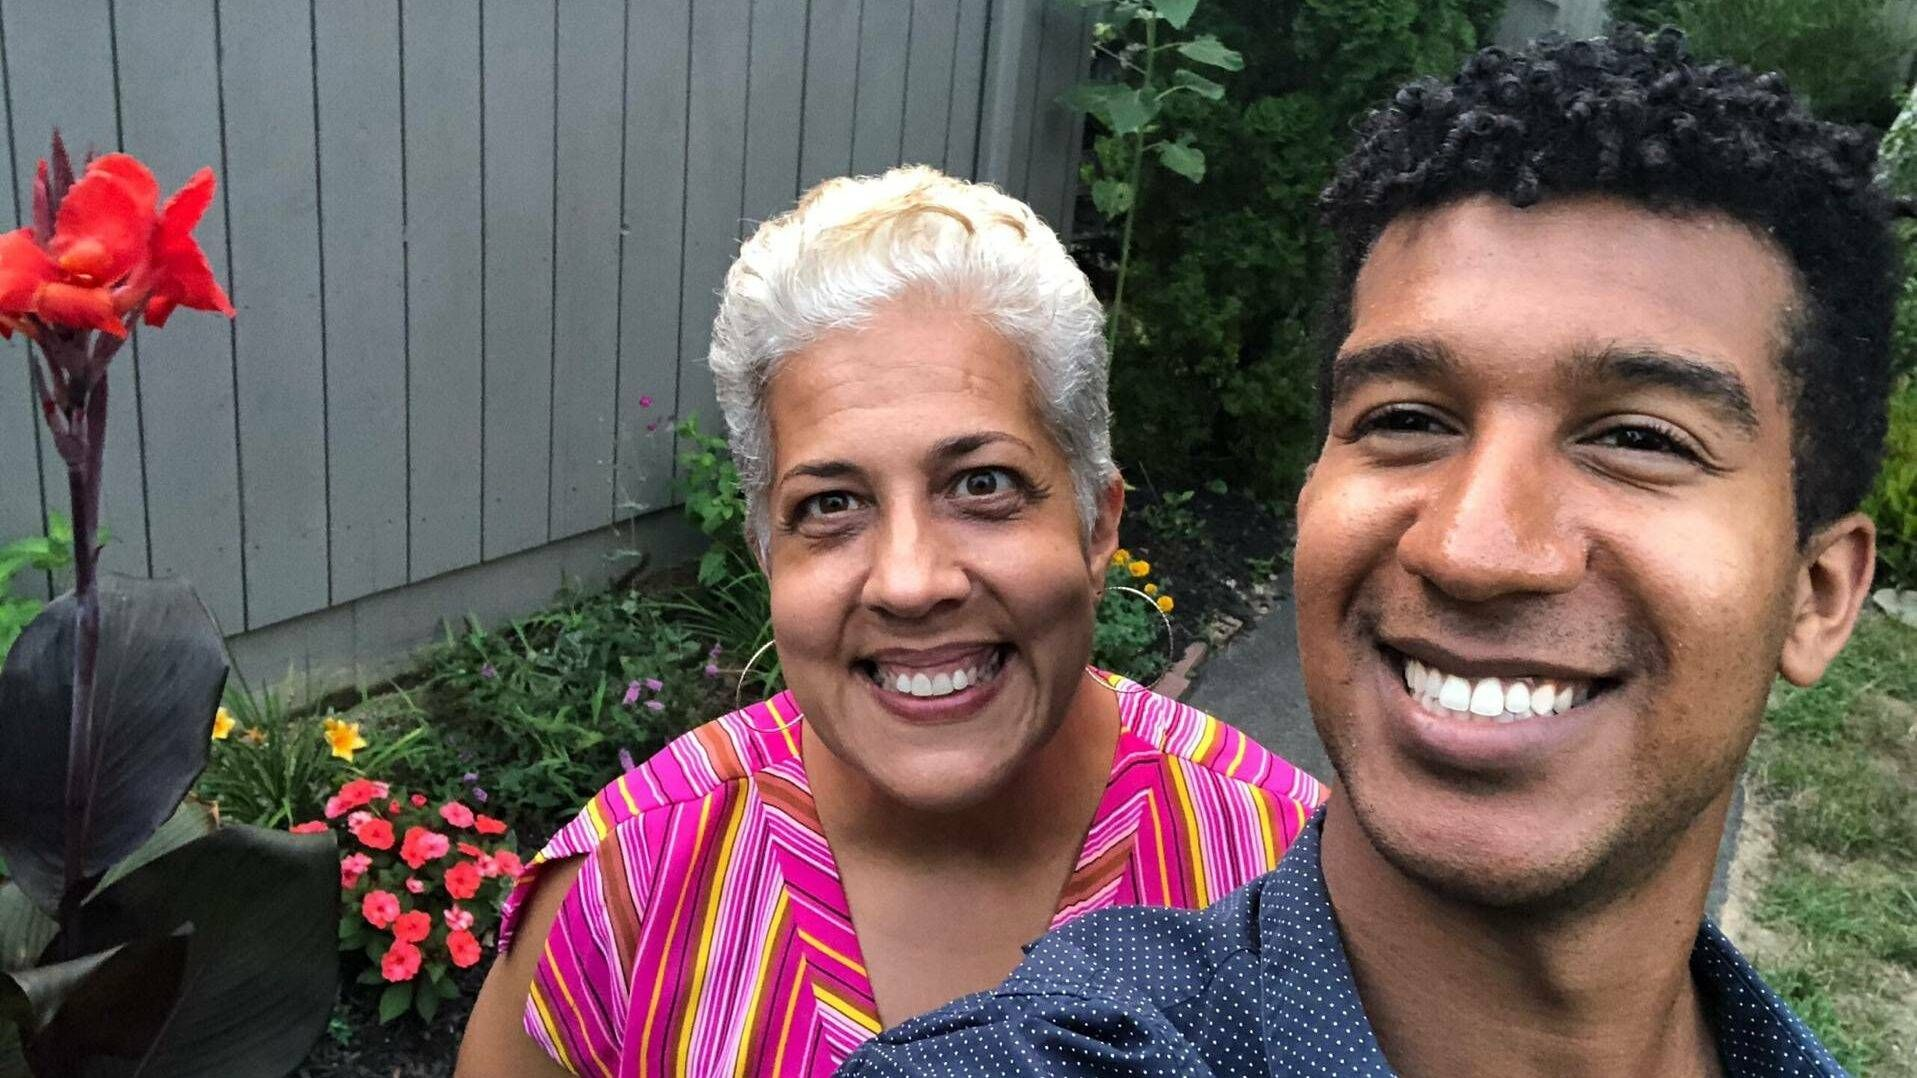 A son and his mom take a selfie outside in their garden in summer. Rewire PBS Love Gardener